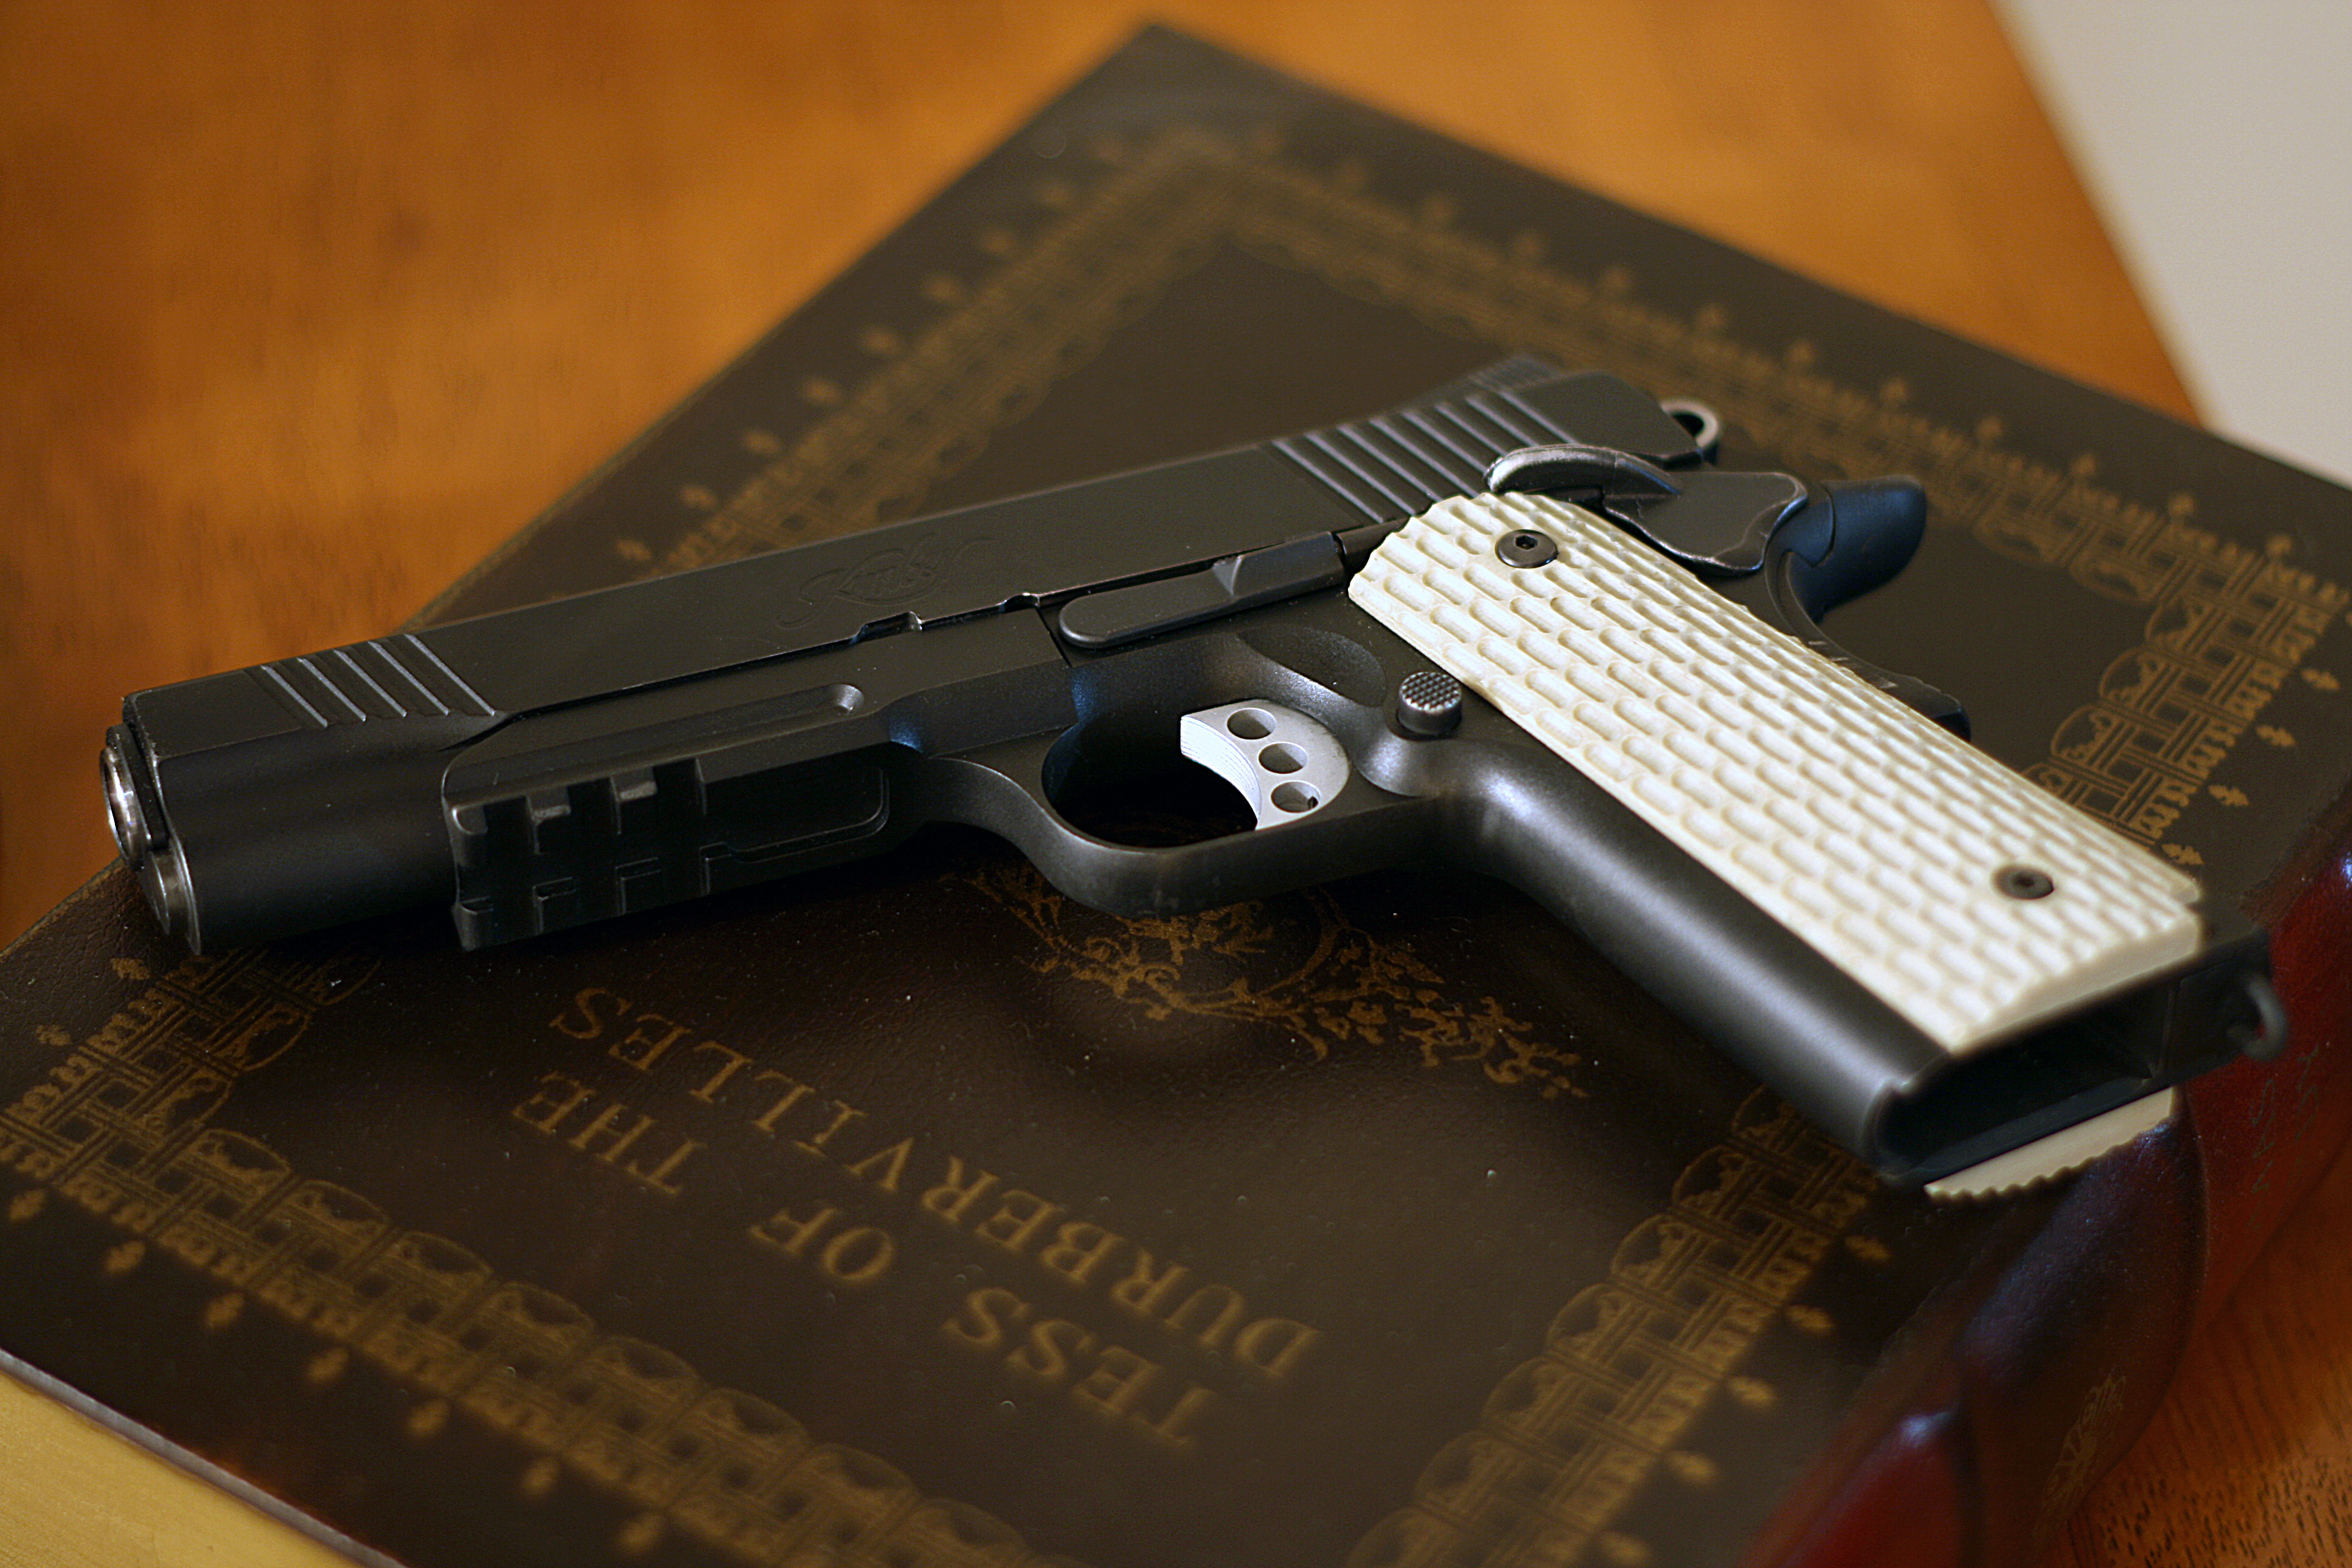 Related Pictures colt 1911 wallpaper http iappsofts com colt 1911 32 3888x2592